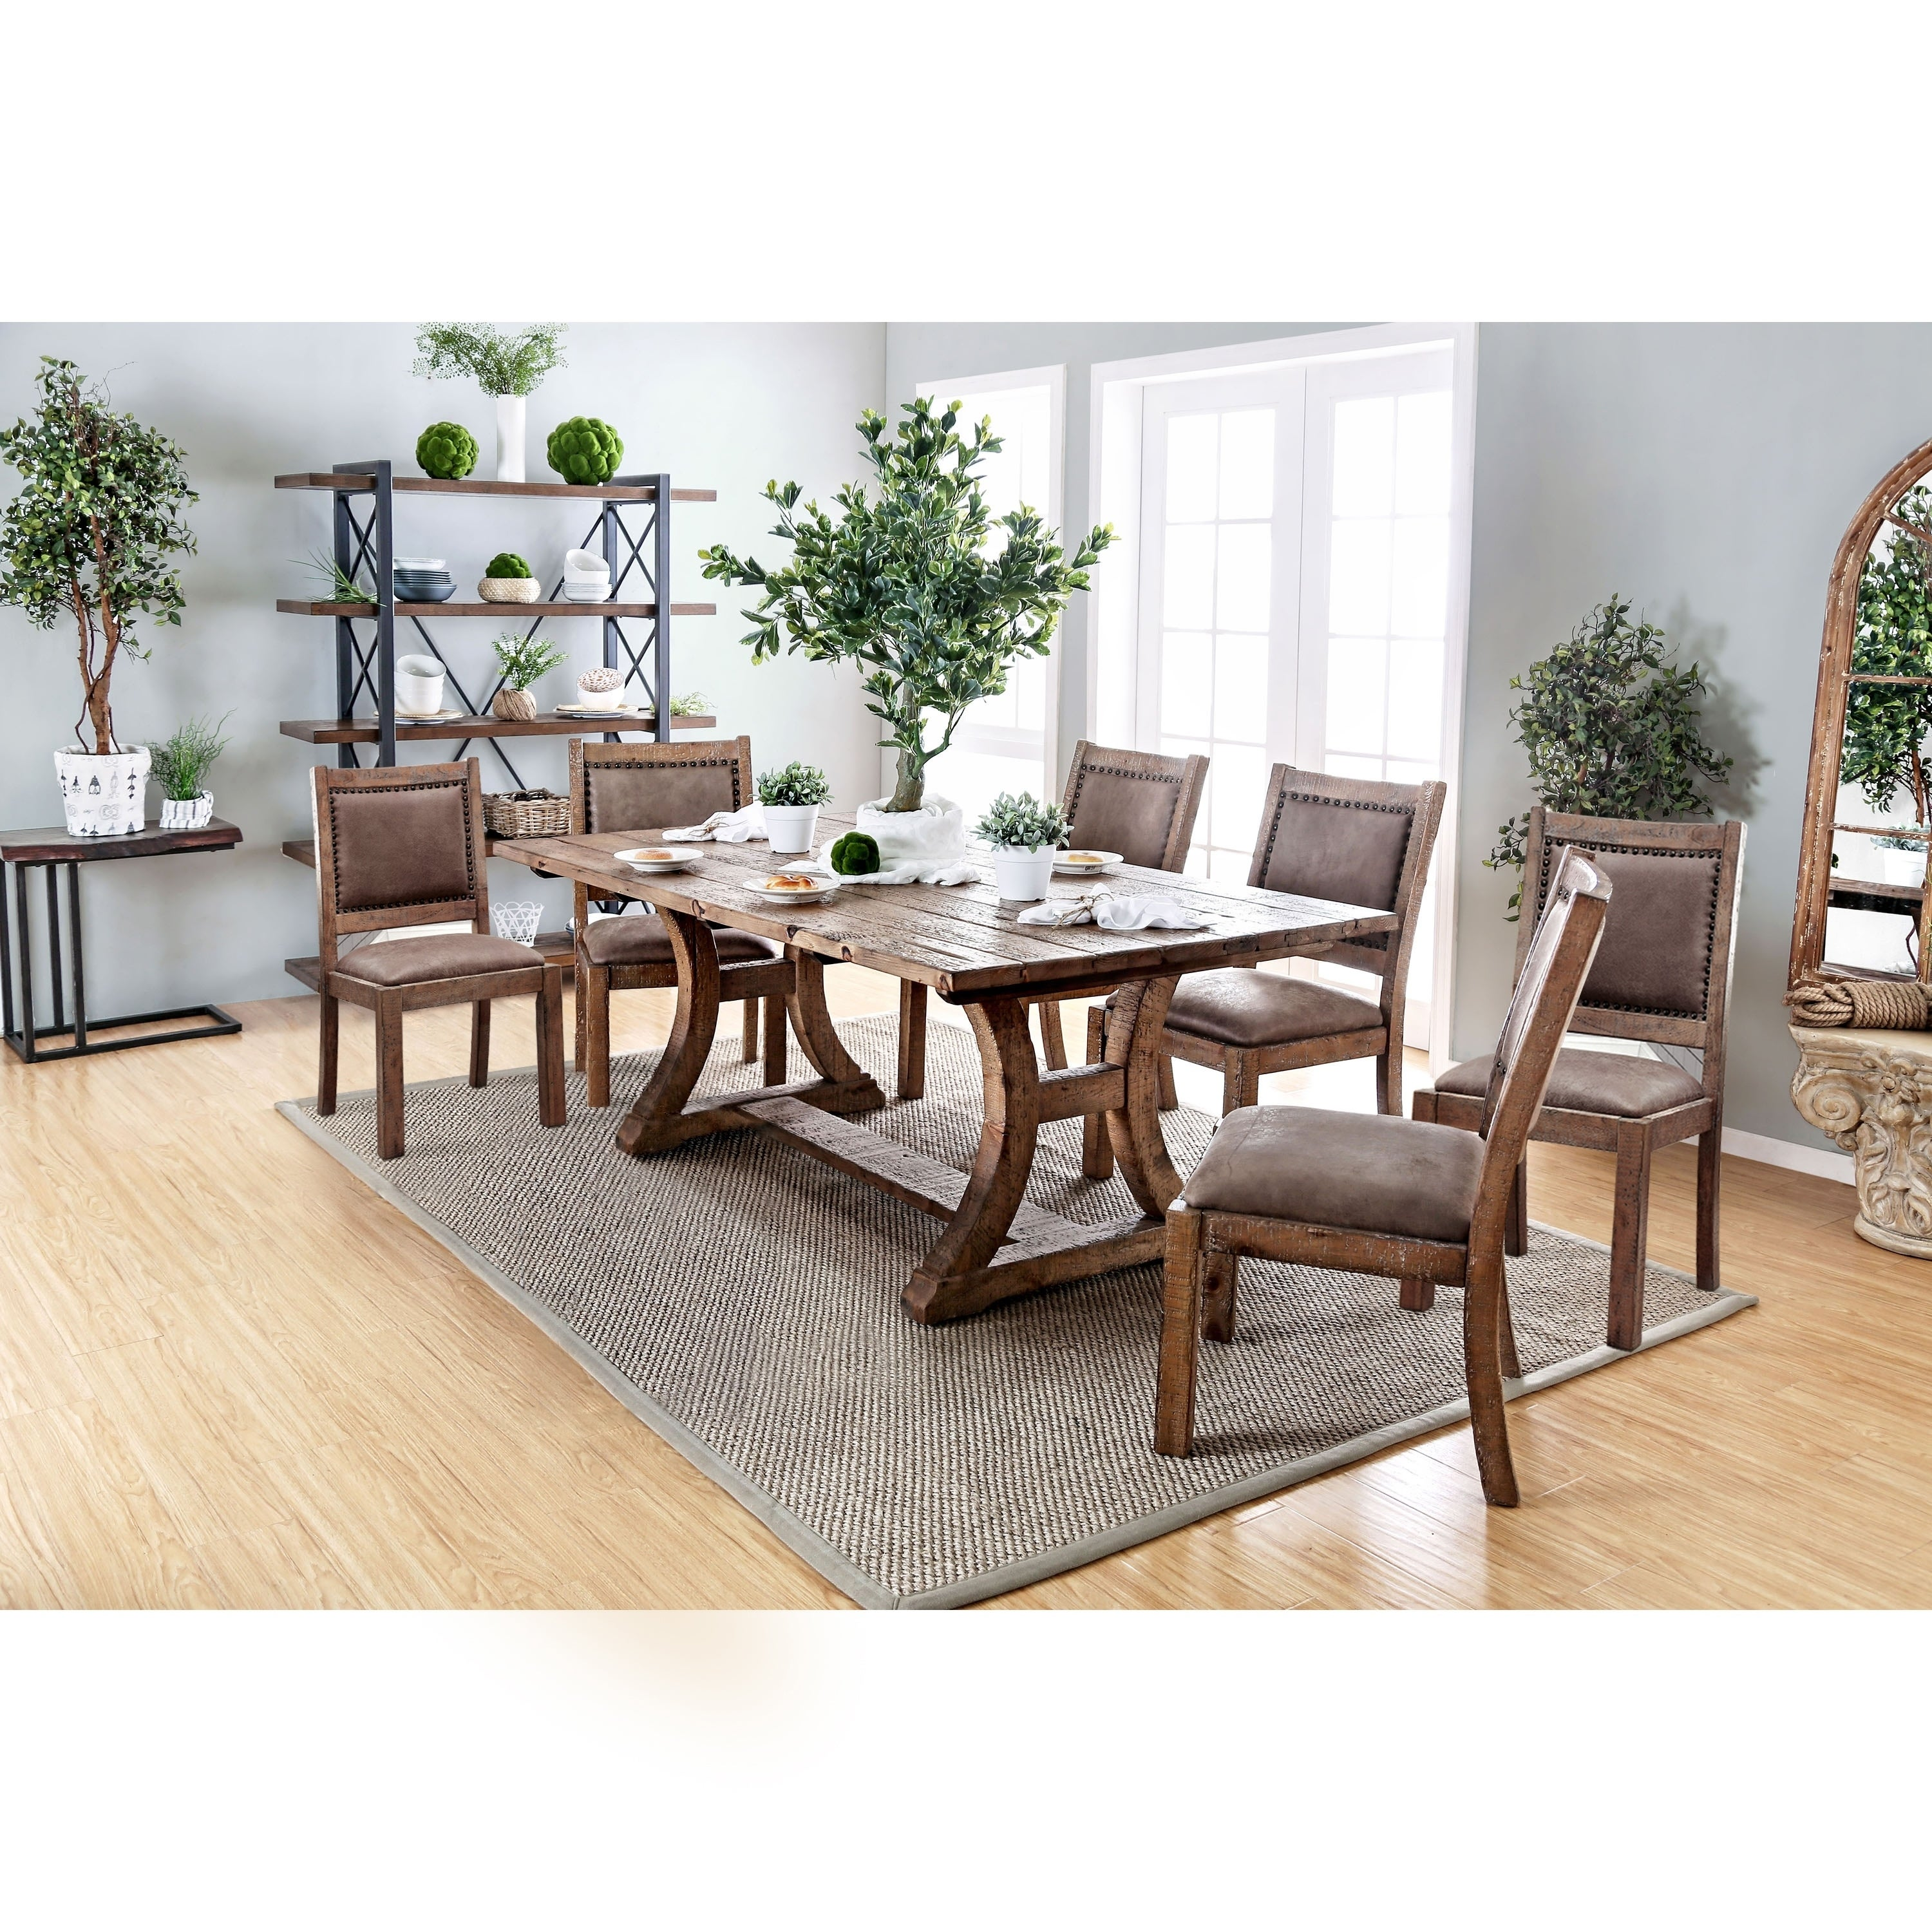 Quint Rustic Pine 7 Piece Dining Table